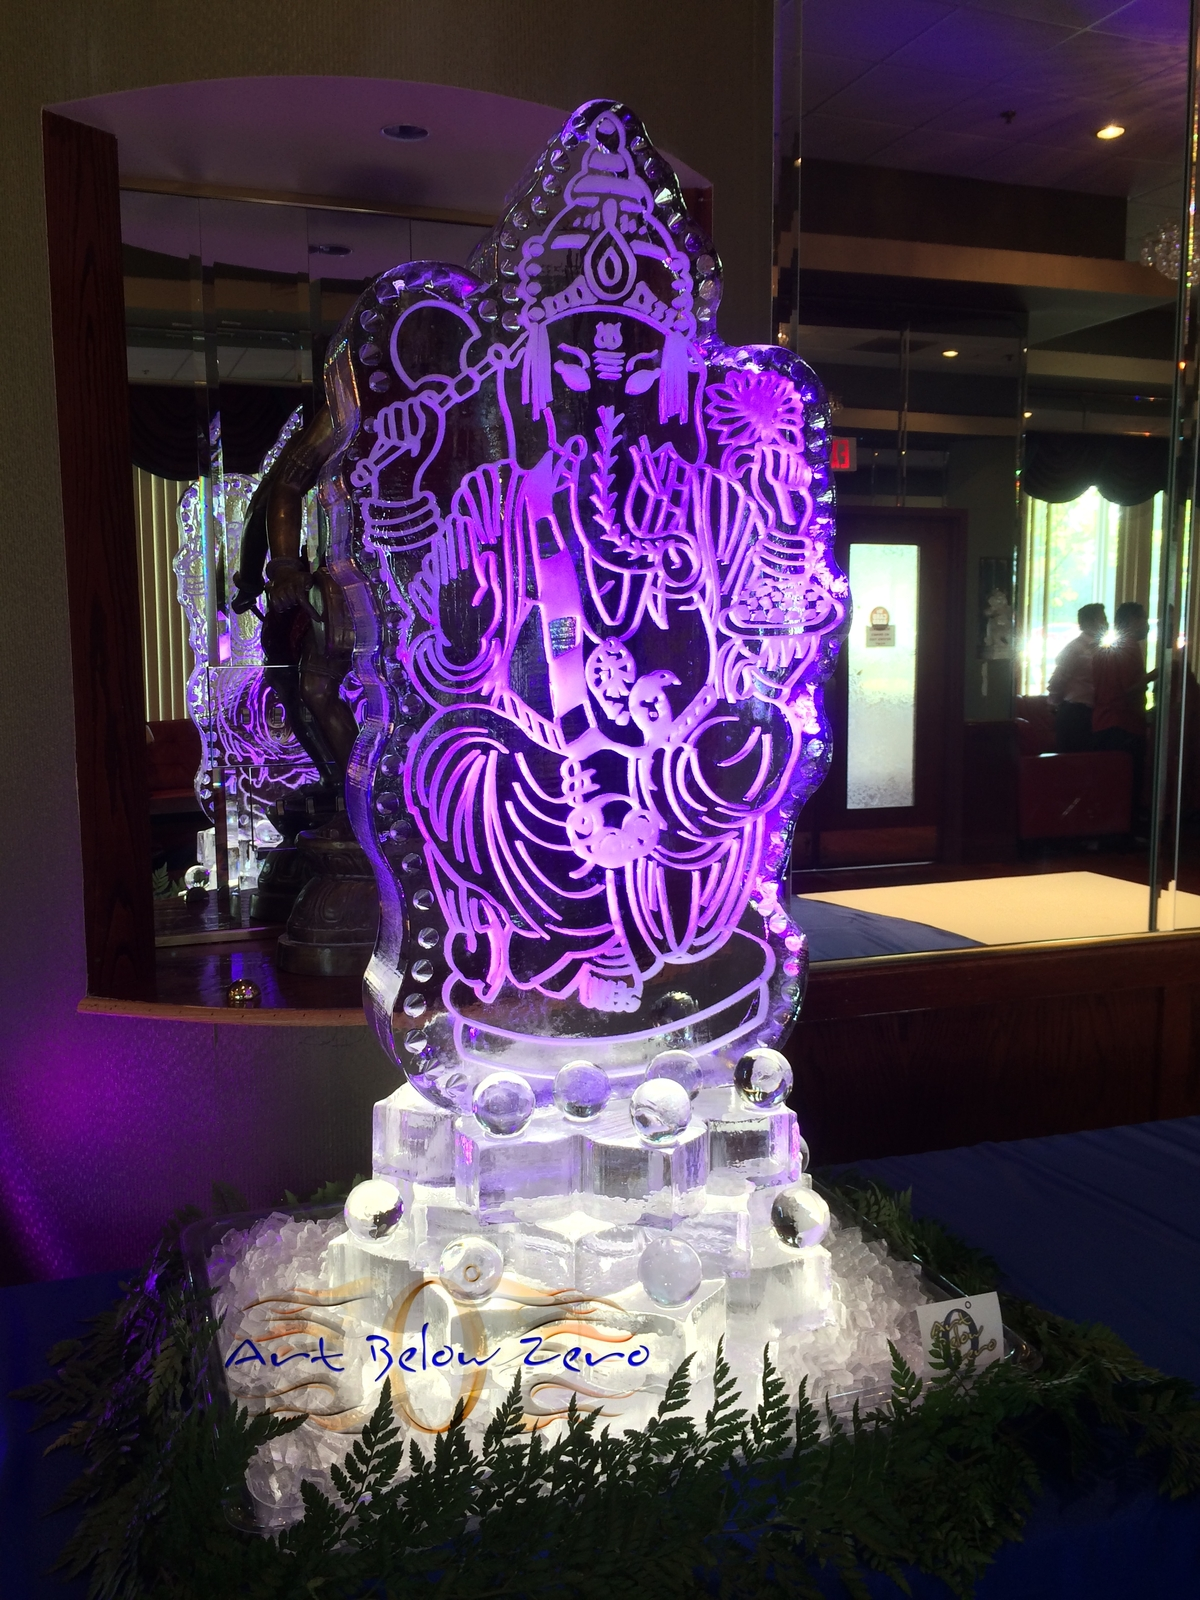 Ganesh_snowfilled_on_lotus_flower_pedestal_ice_sculpture